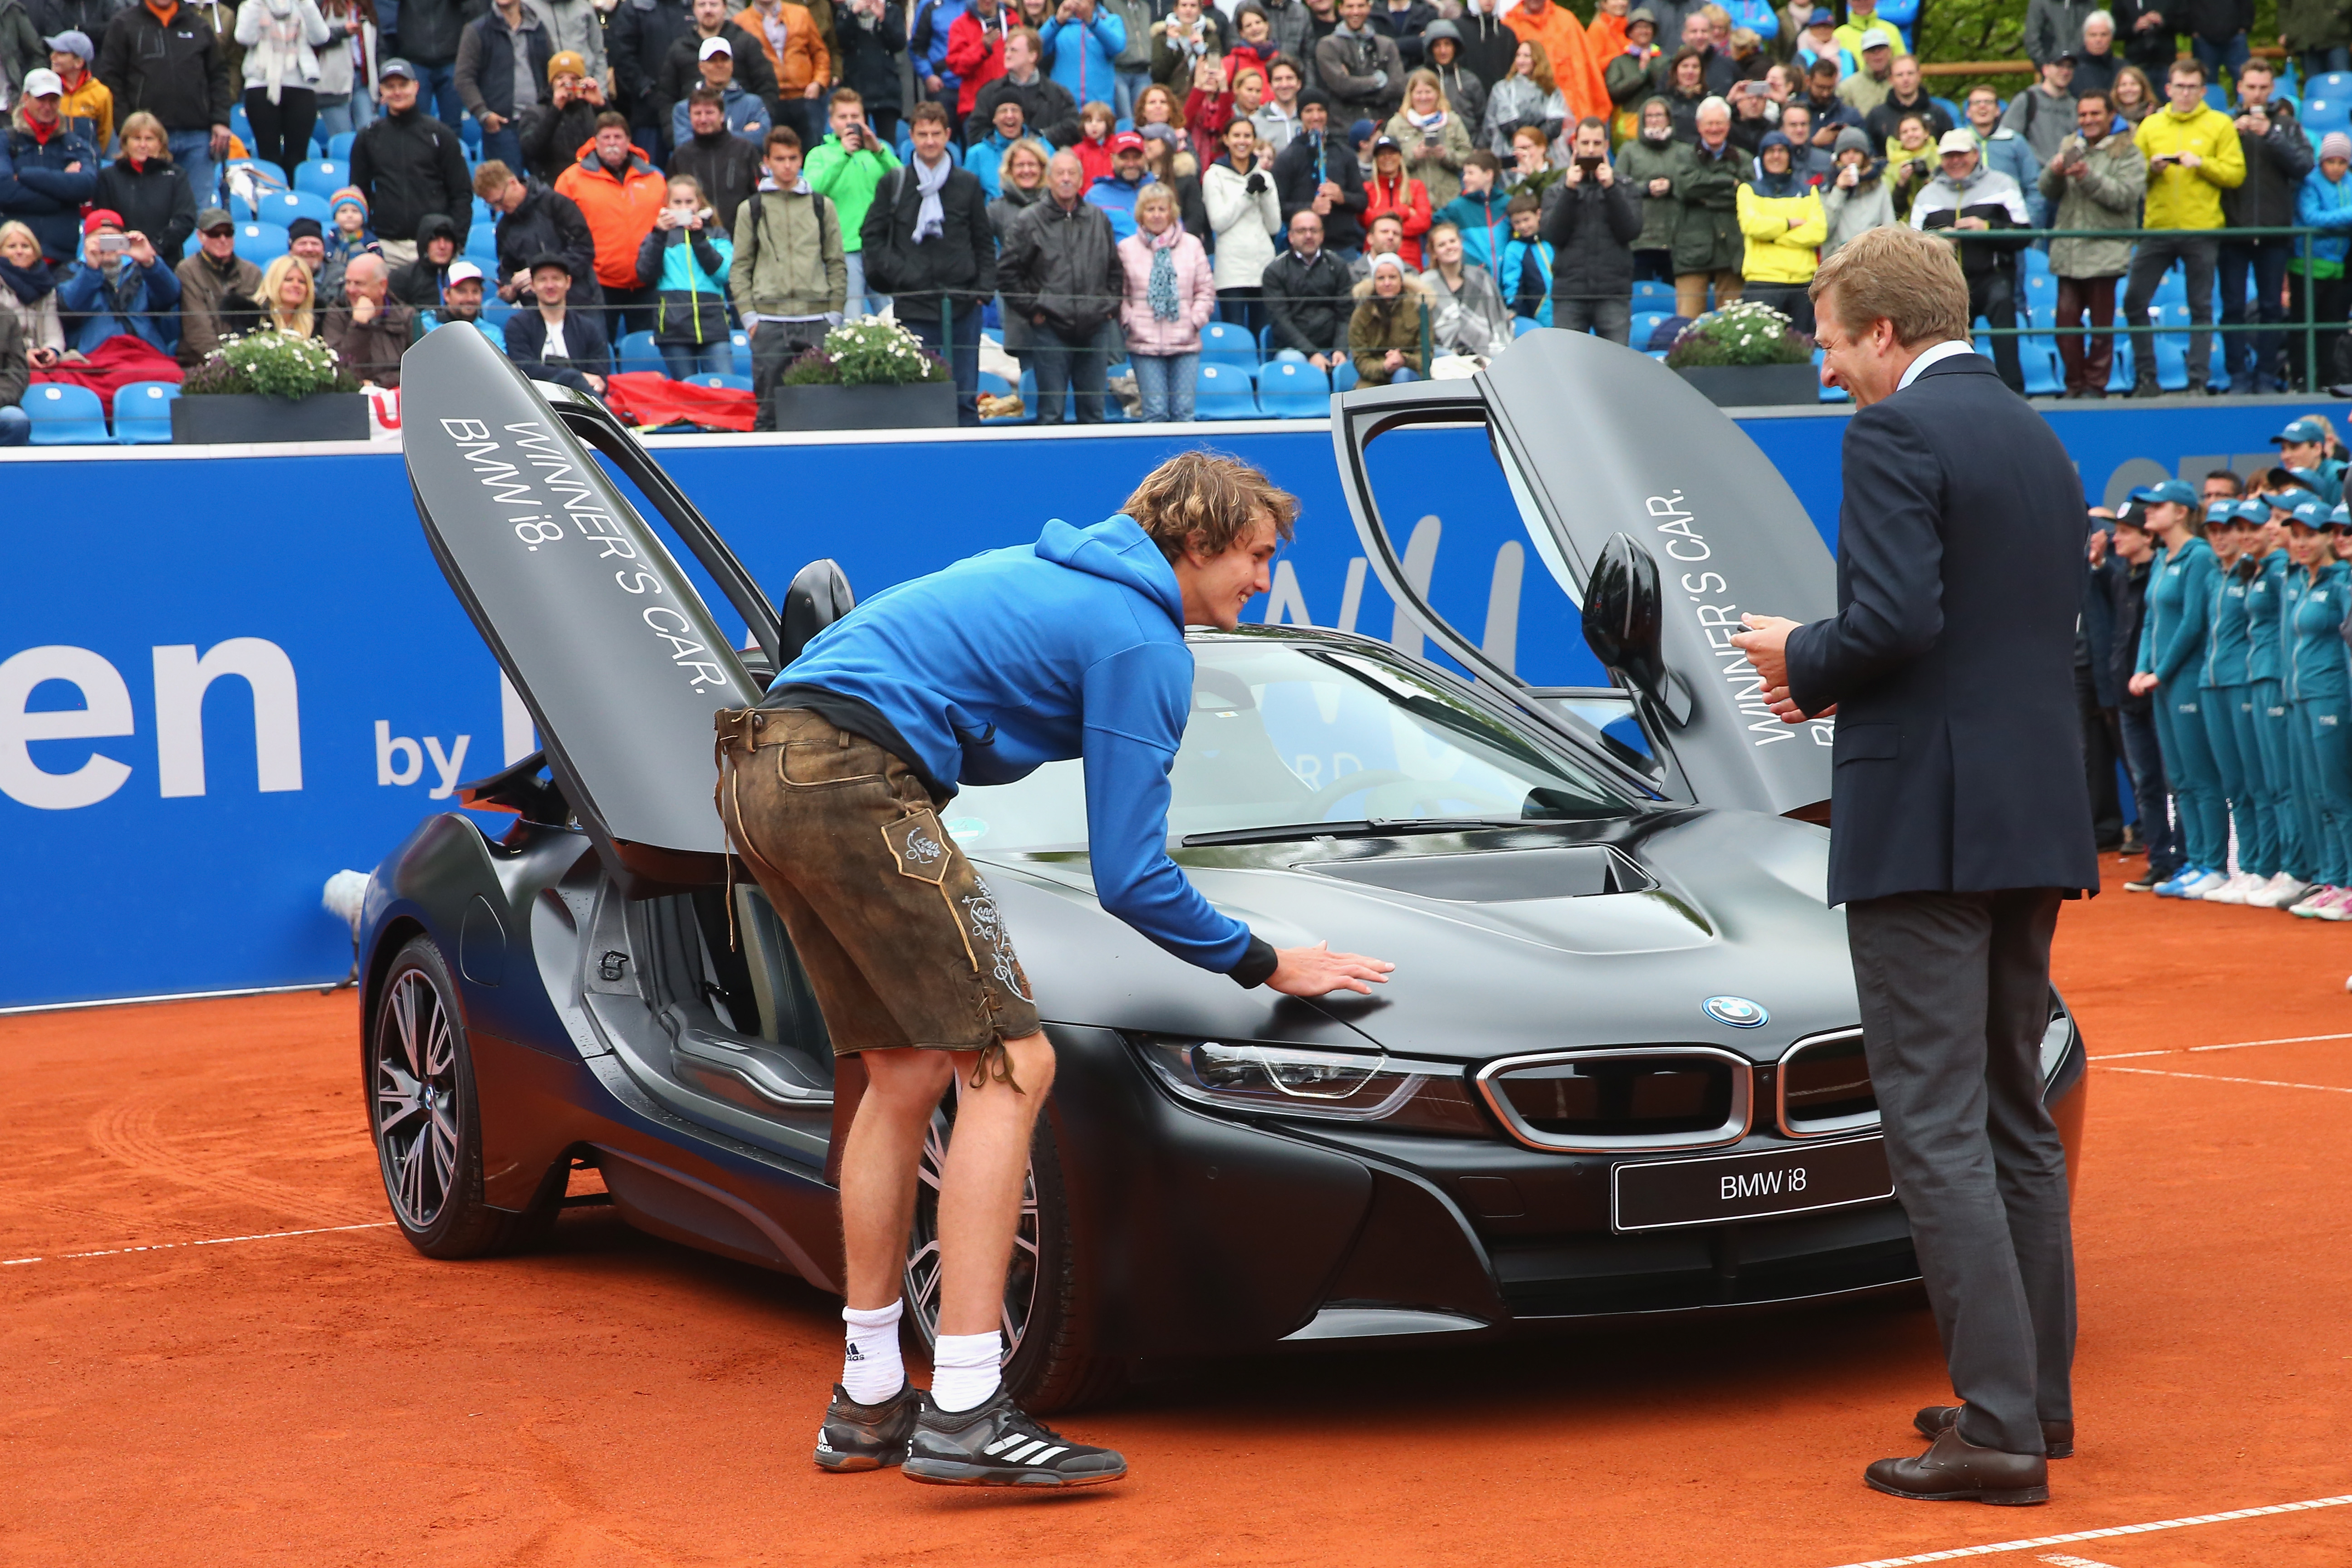 MUNICH, GERMANY - MAY 07: Alexander Zverev of Germany celebrates with winner's car BMW i8 after winning his finale match against Guido Pella of Argentina of the 102. BMW Open by FWU at Iphitos tennis club on May 7, 2017 in Munich, Germany. (Photo by Alexander Hassenstein/Getty Images For BMW)